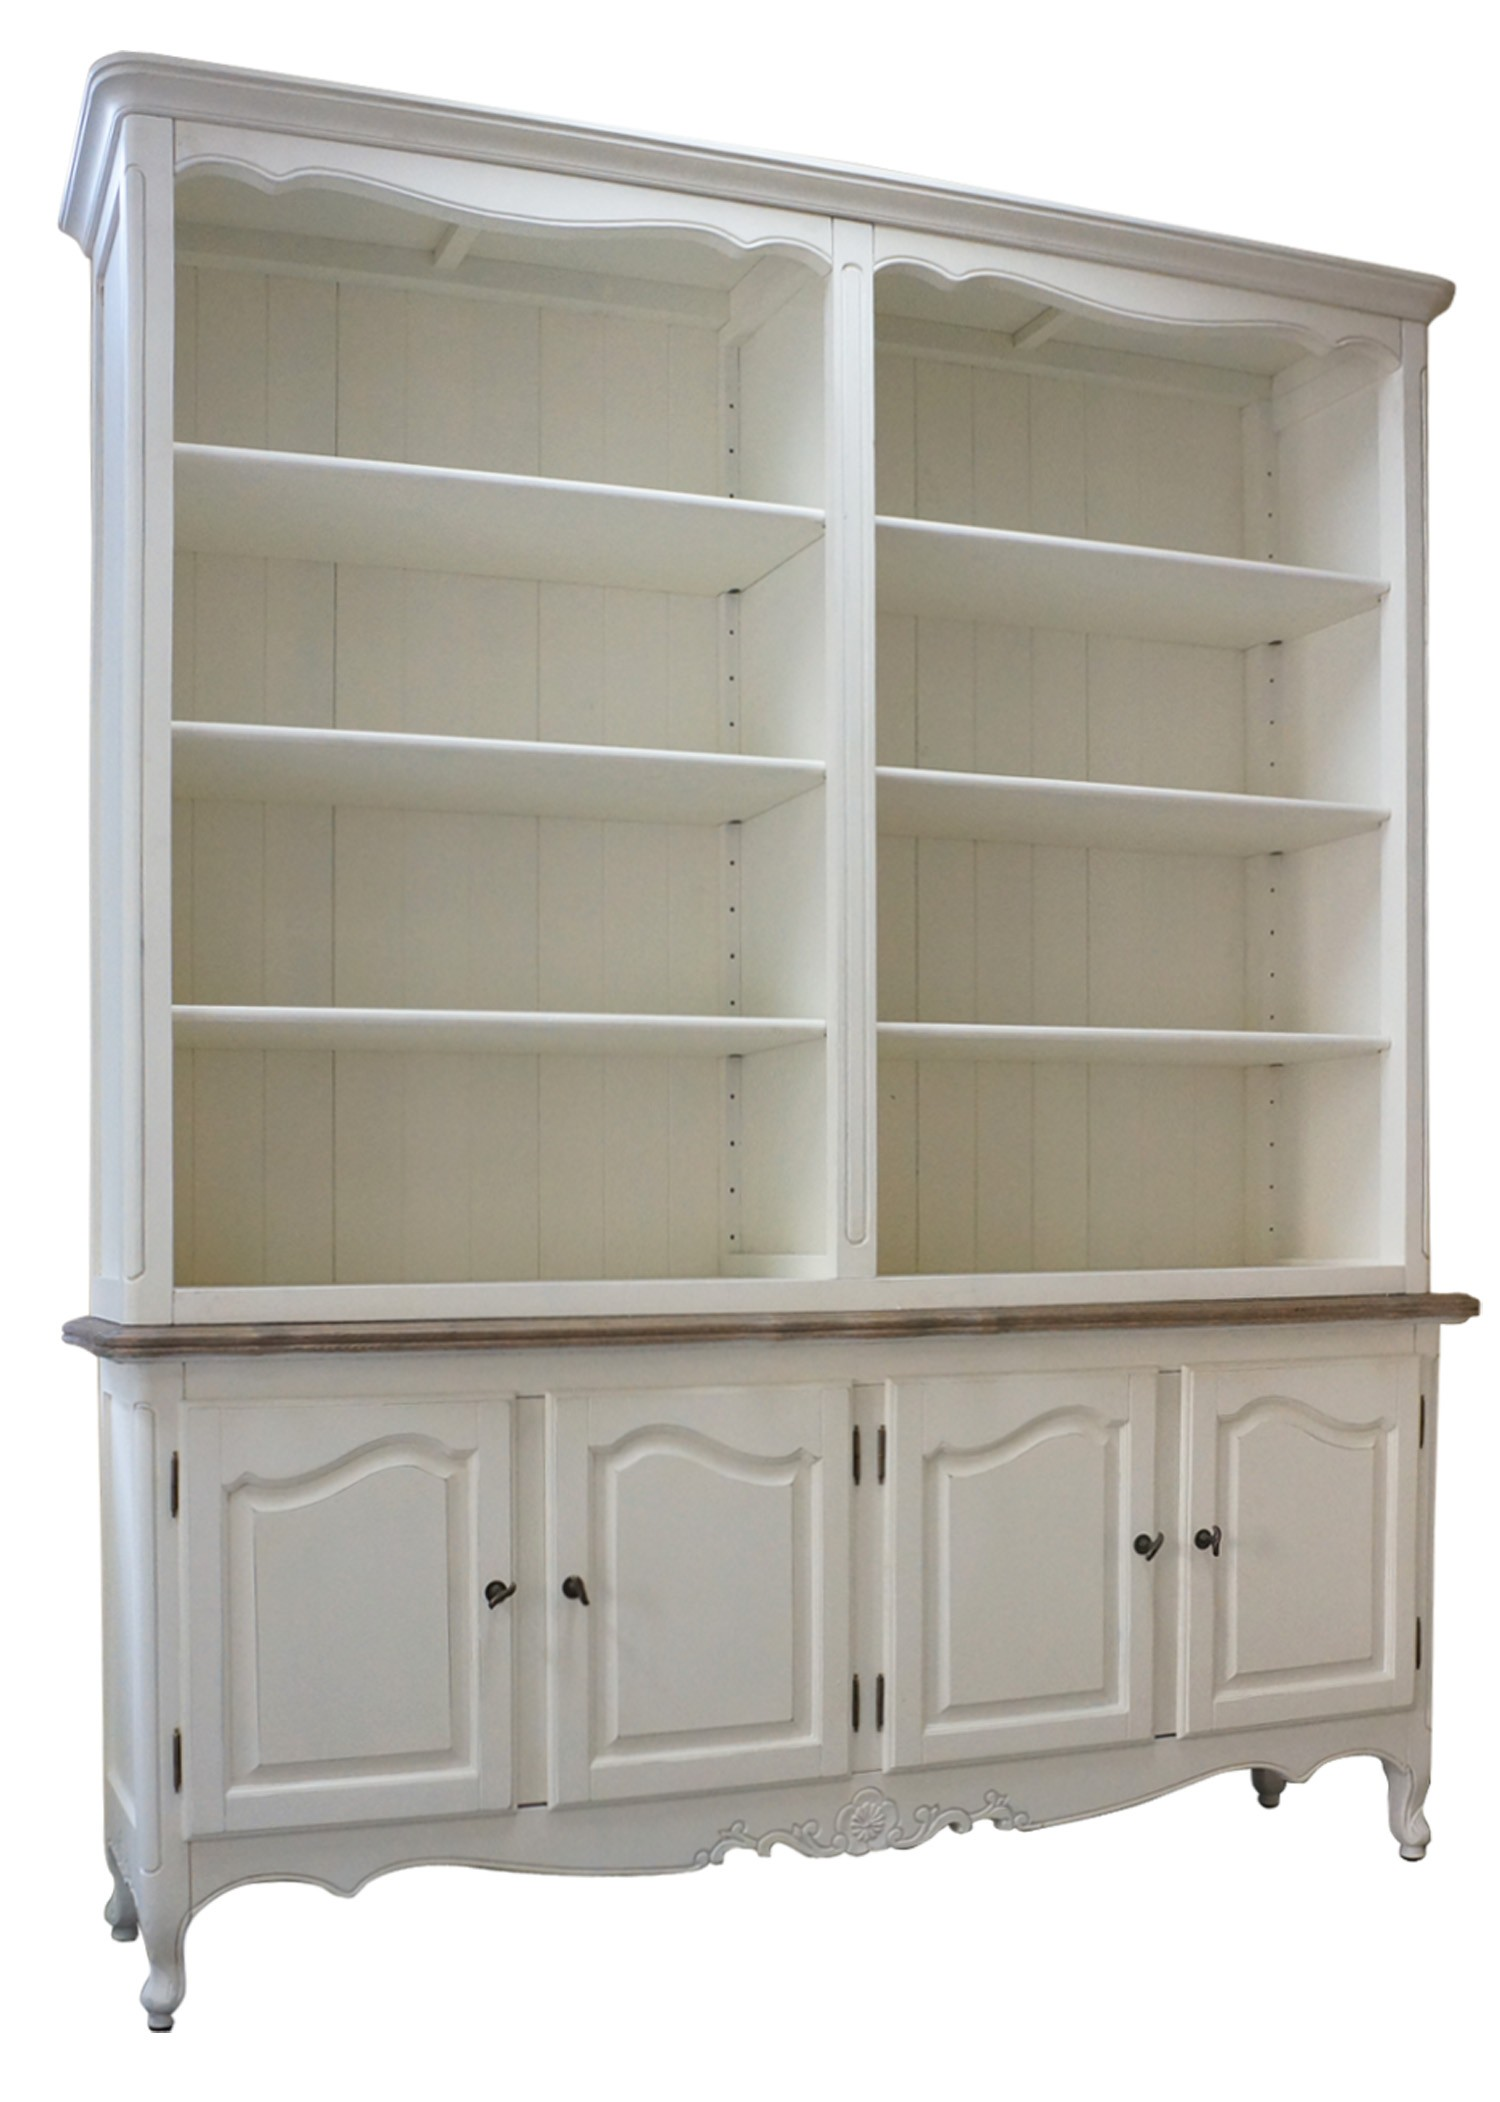 French Provincial Buffet And Open Hutch Sideboard Dresser Bookcase In White Wholesales Direct